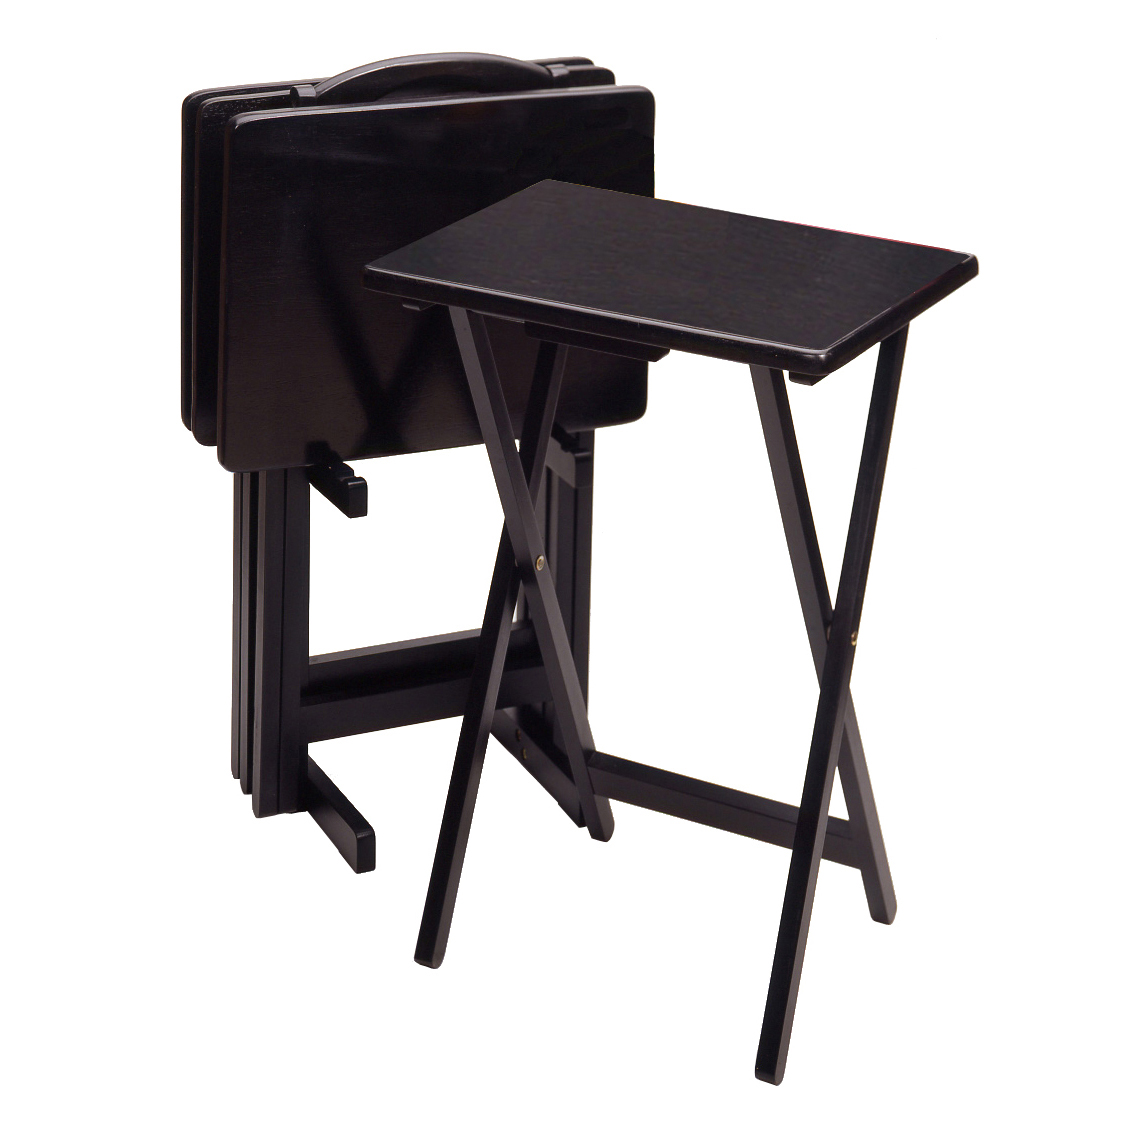 Cosco Folding Tables Winsome Black 5-Piece Rectangular TV Table Set - TV Trays at Hayneedle